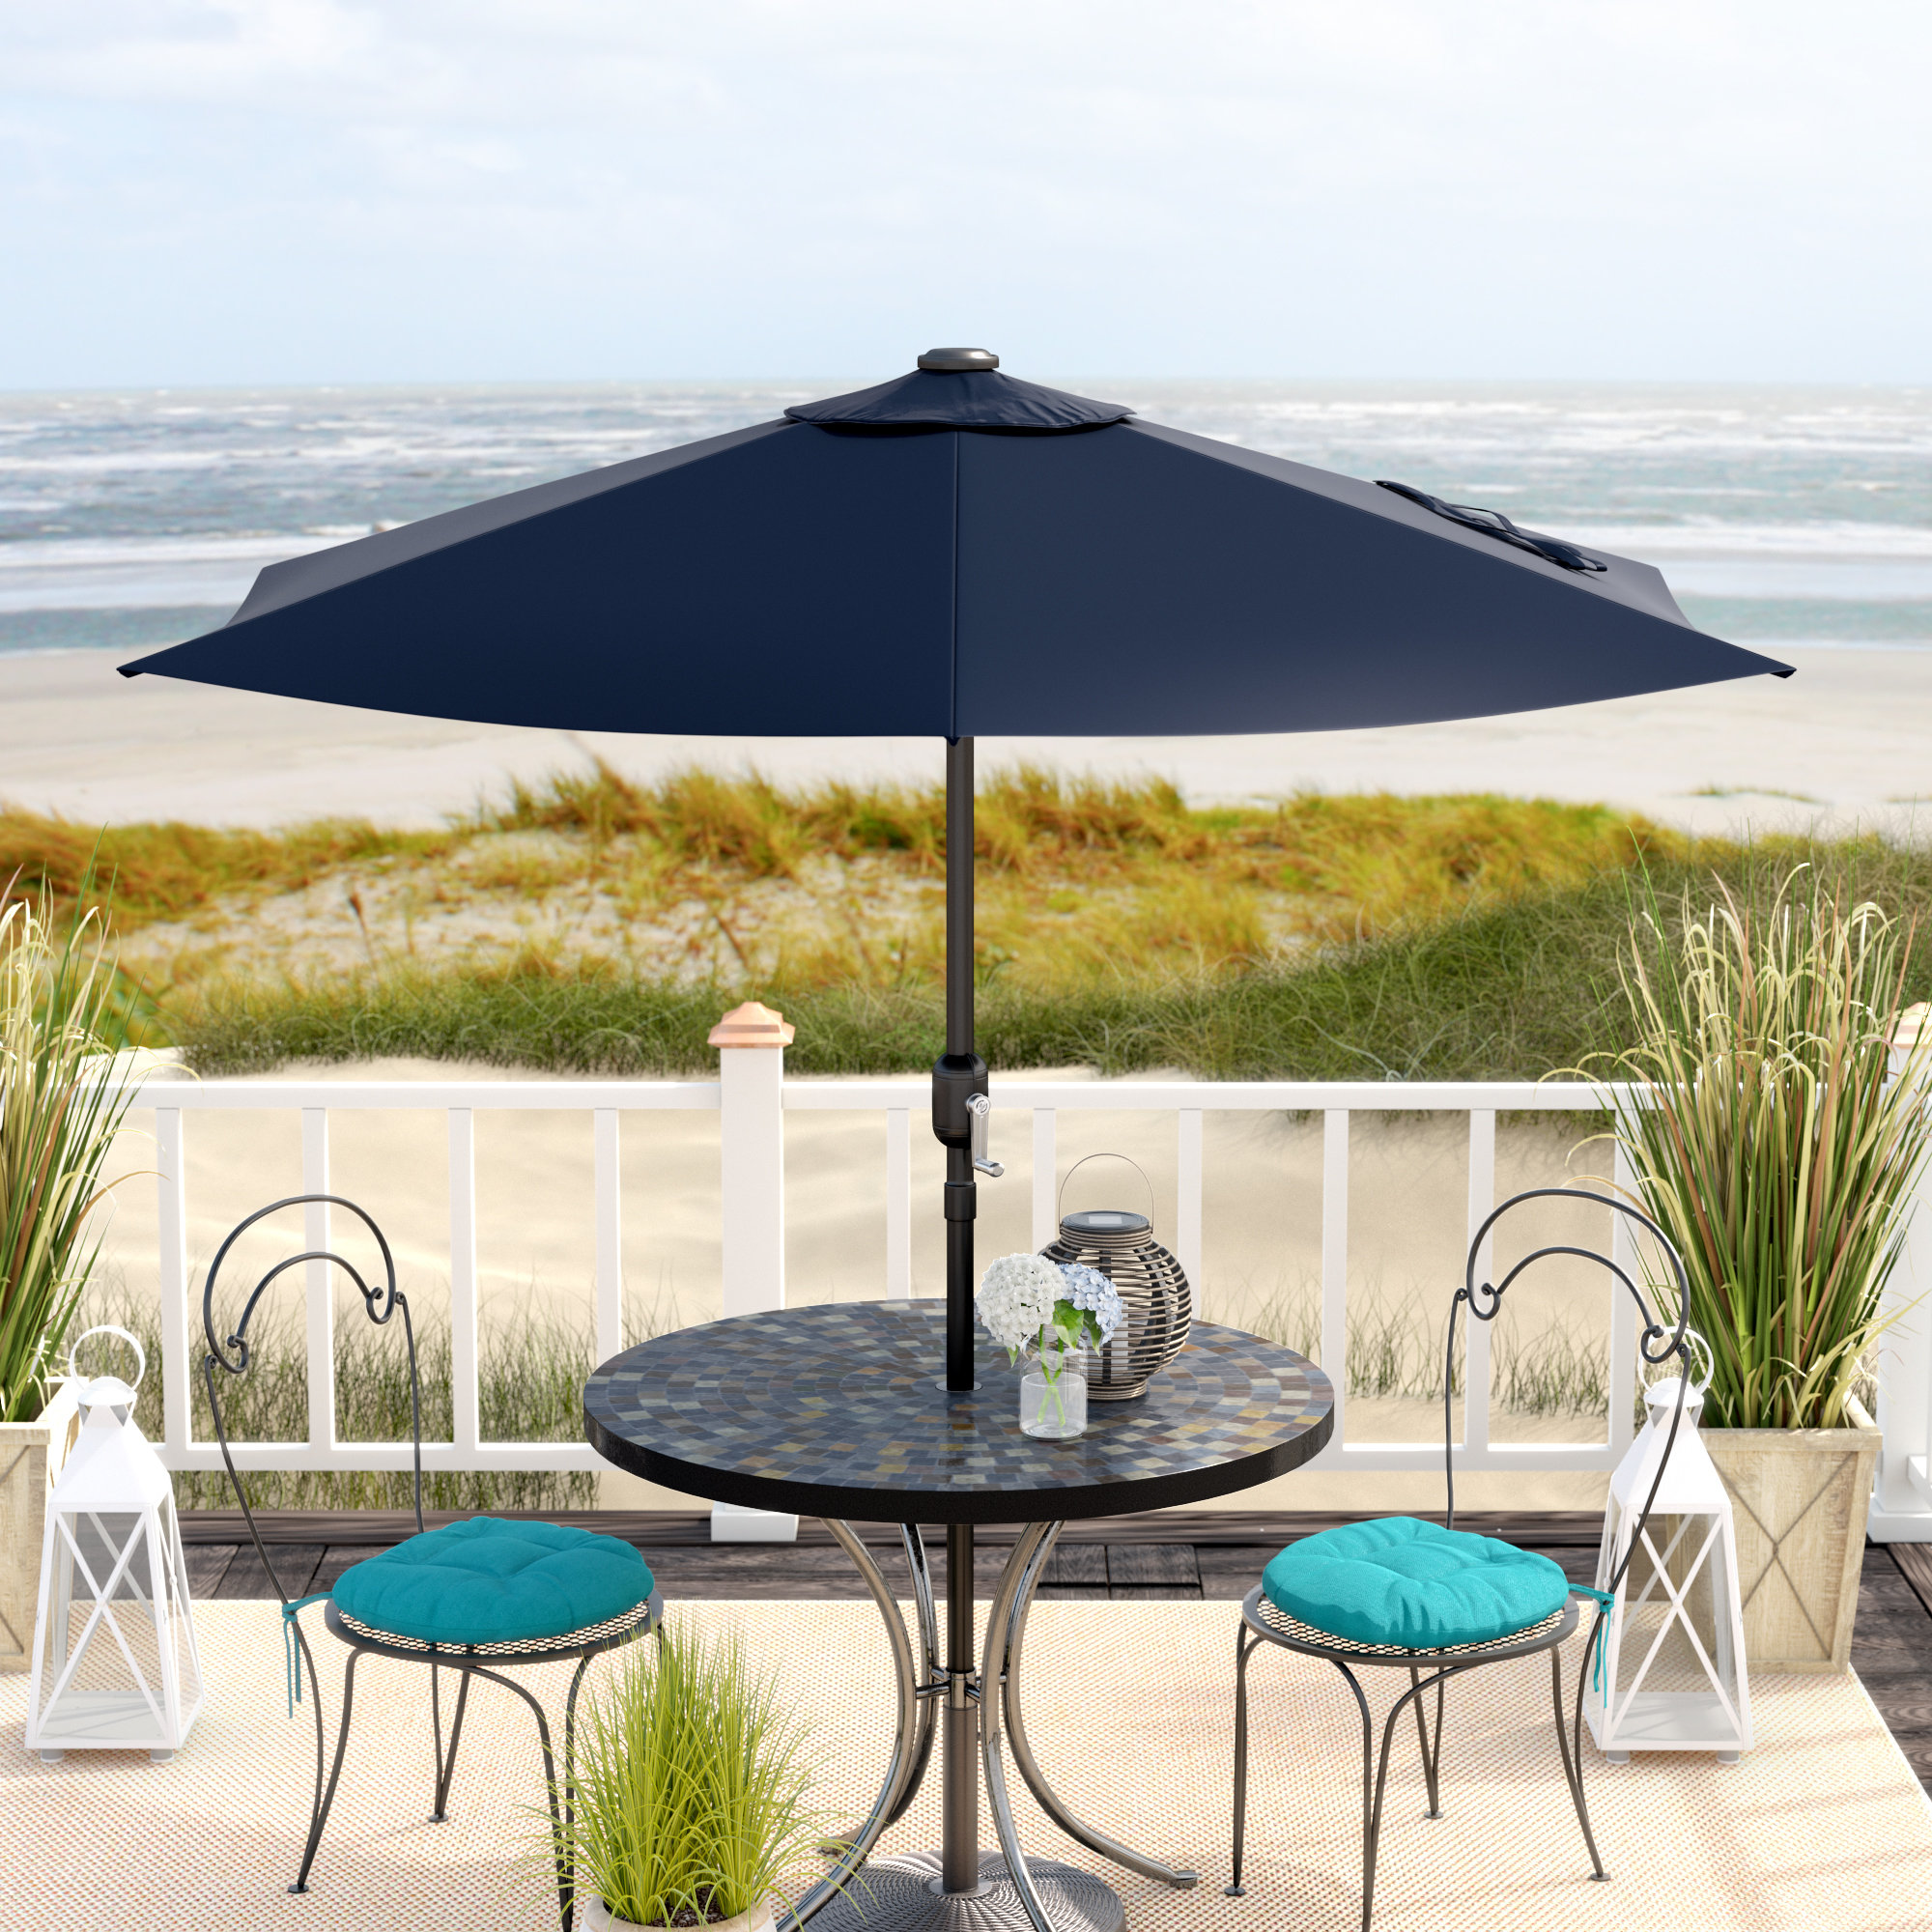 umbrella side table allport market outdoor quickview patio umbrellas cream tablecloth rattan end tables with glass top dining accents quality furniture simple console antique